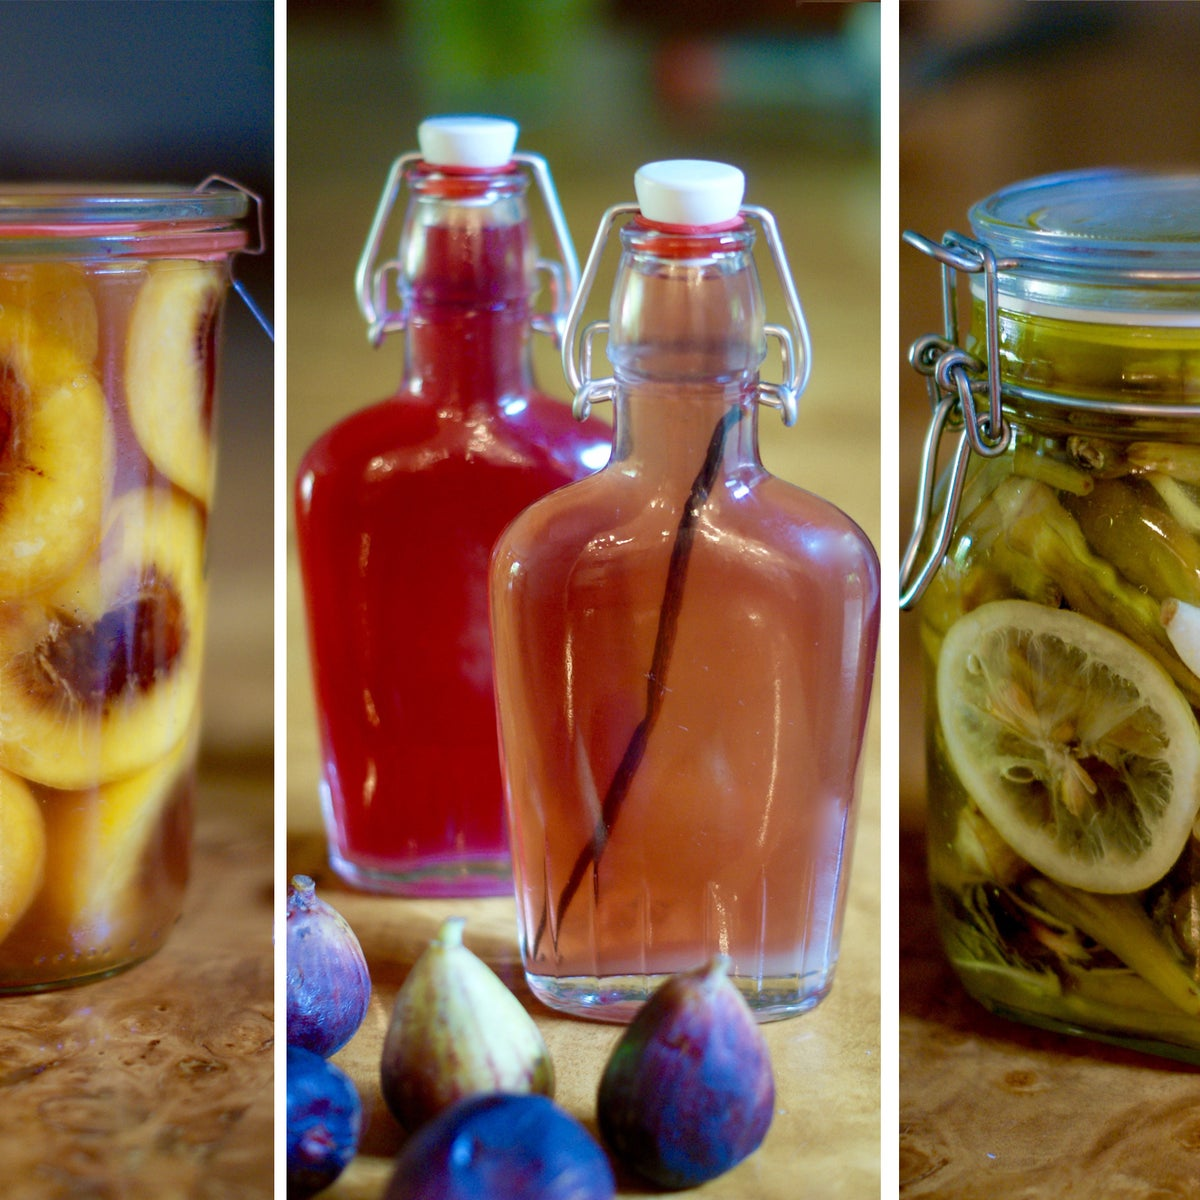 Fig and vanilla infused arak; Pomegranate infused arak / Peach and brandy preserves / Pickled okra.